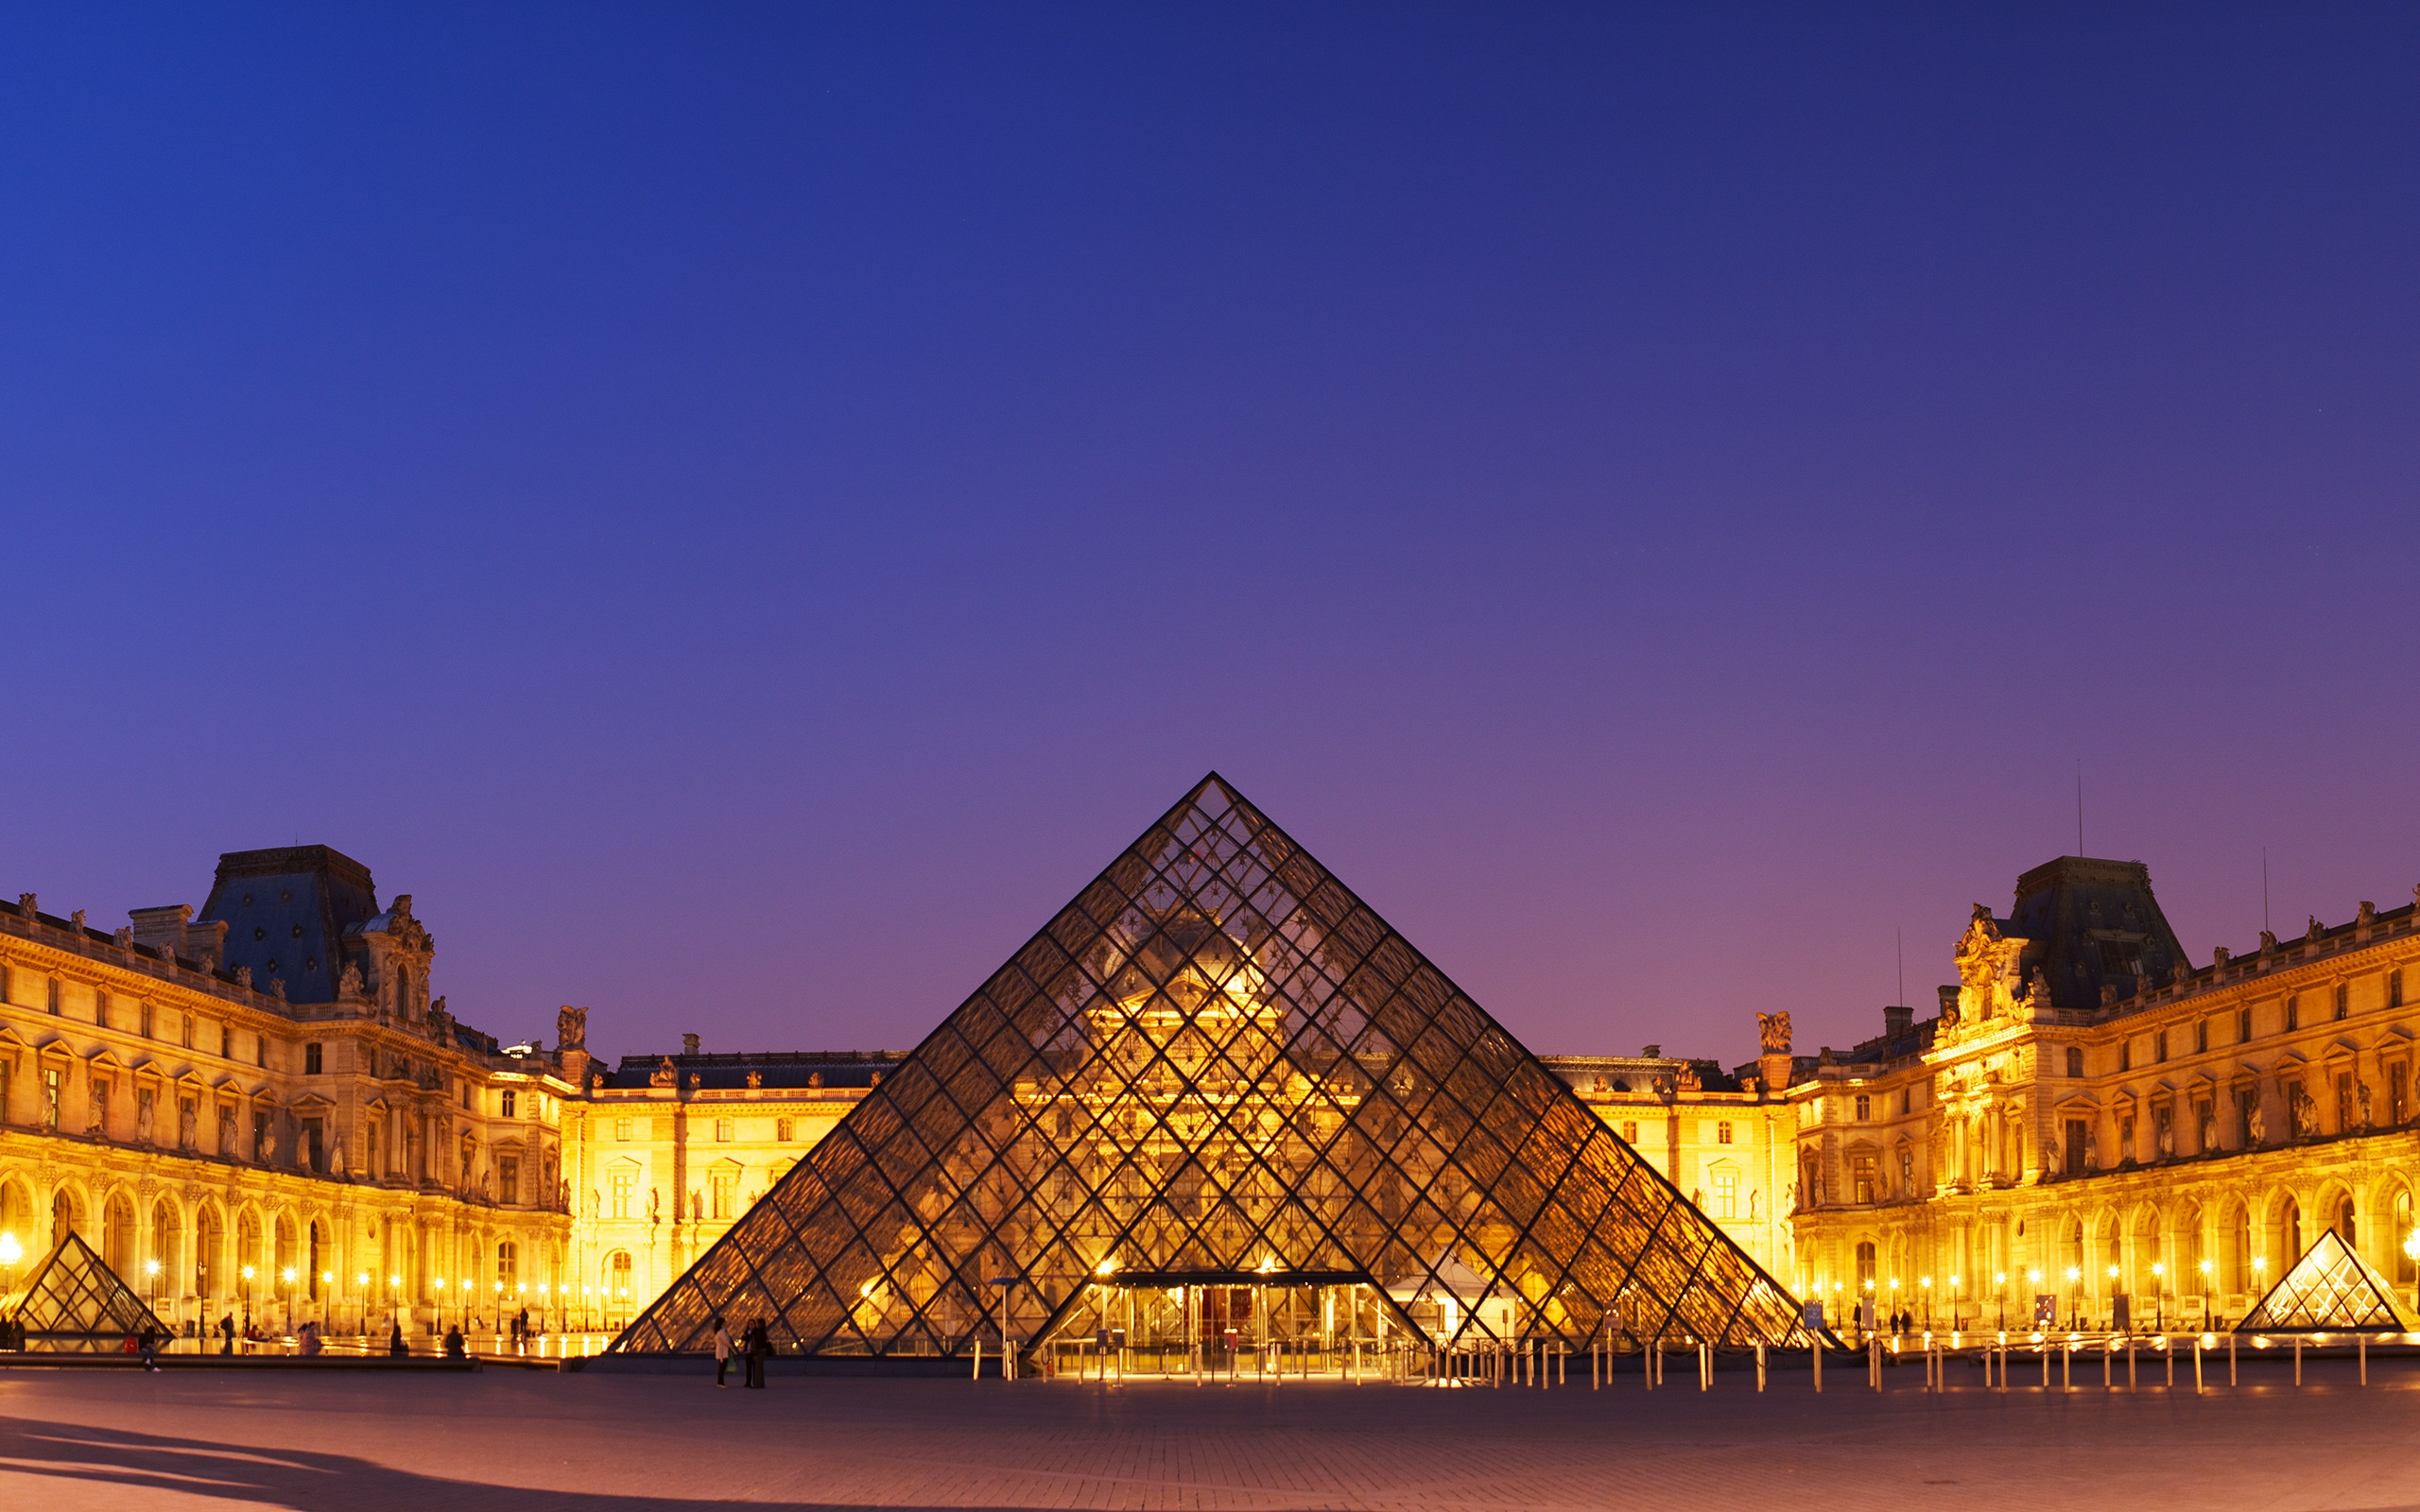 Best 46 Louvre Wallpaper on HipWallpaper Louvre Wallpaper 2560x1600